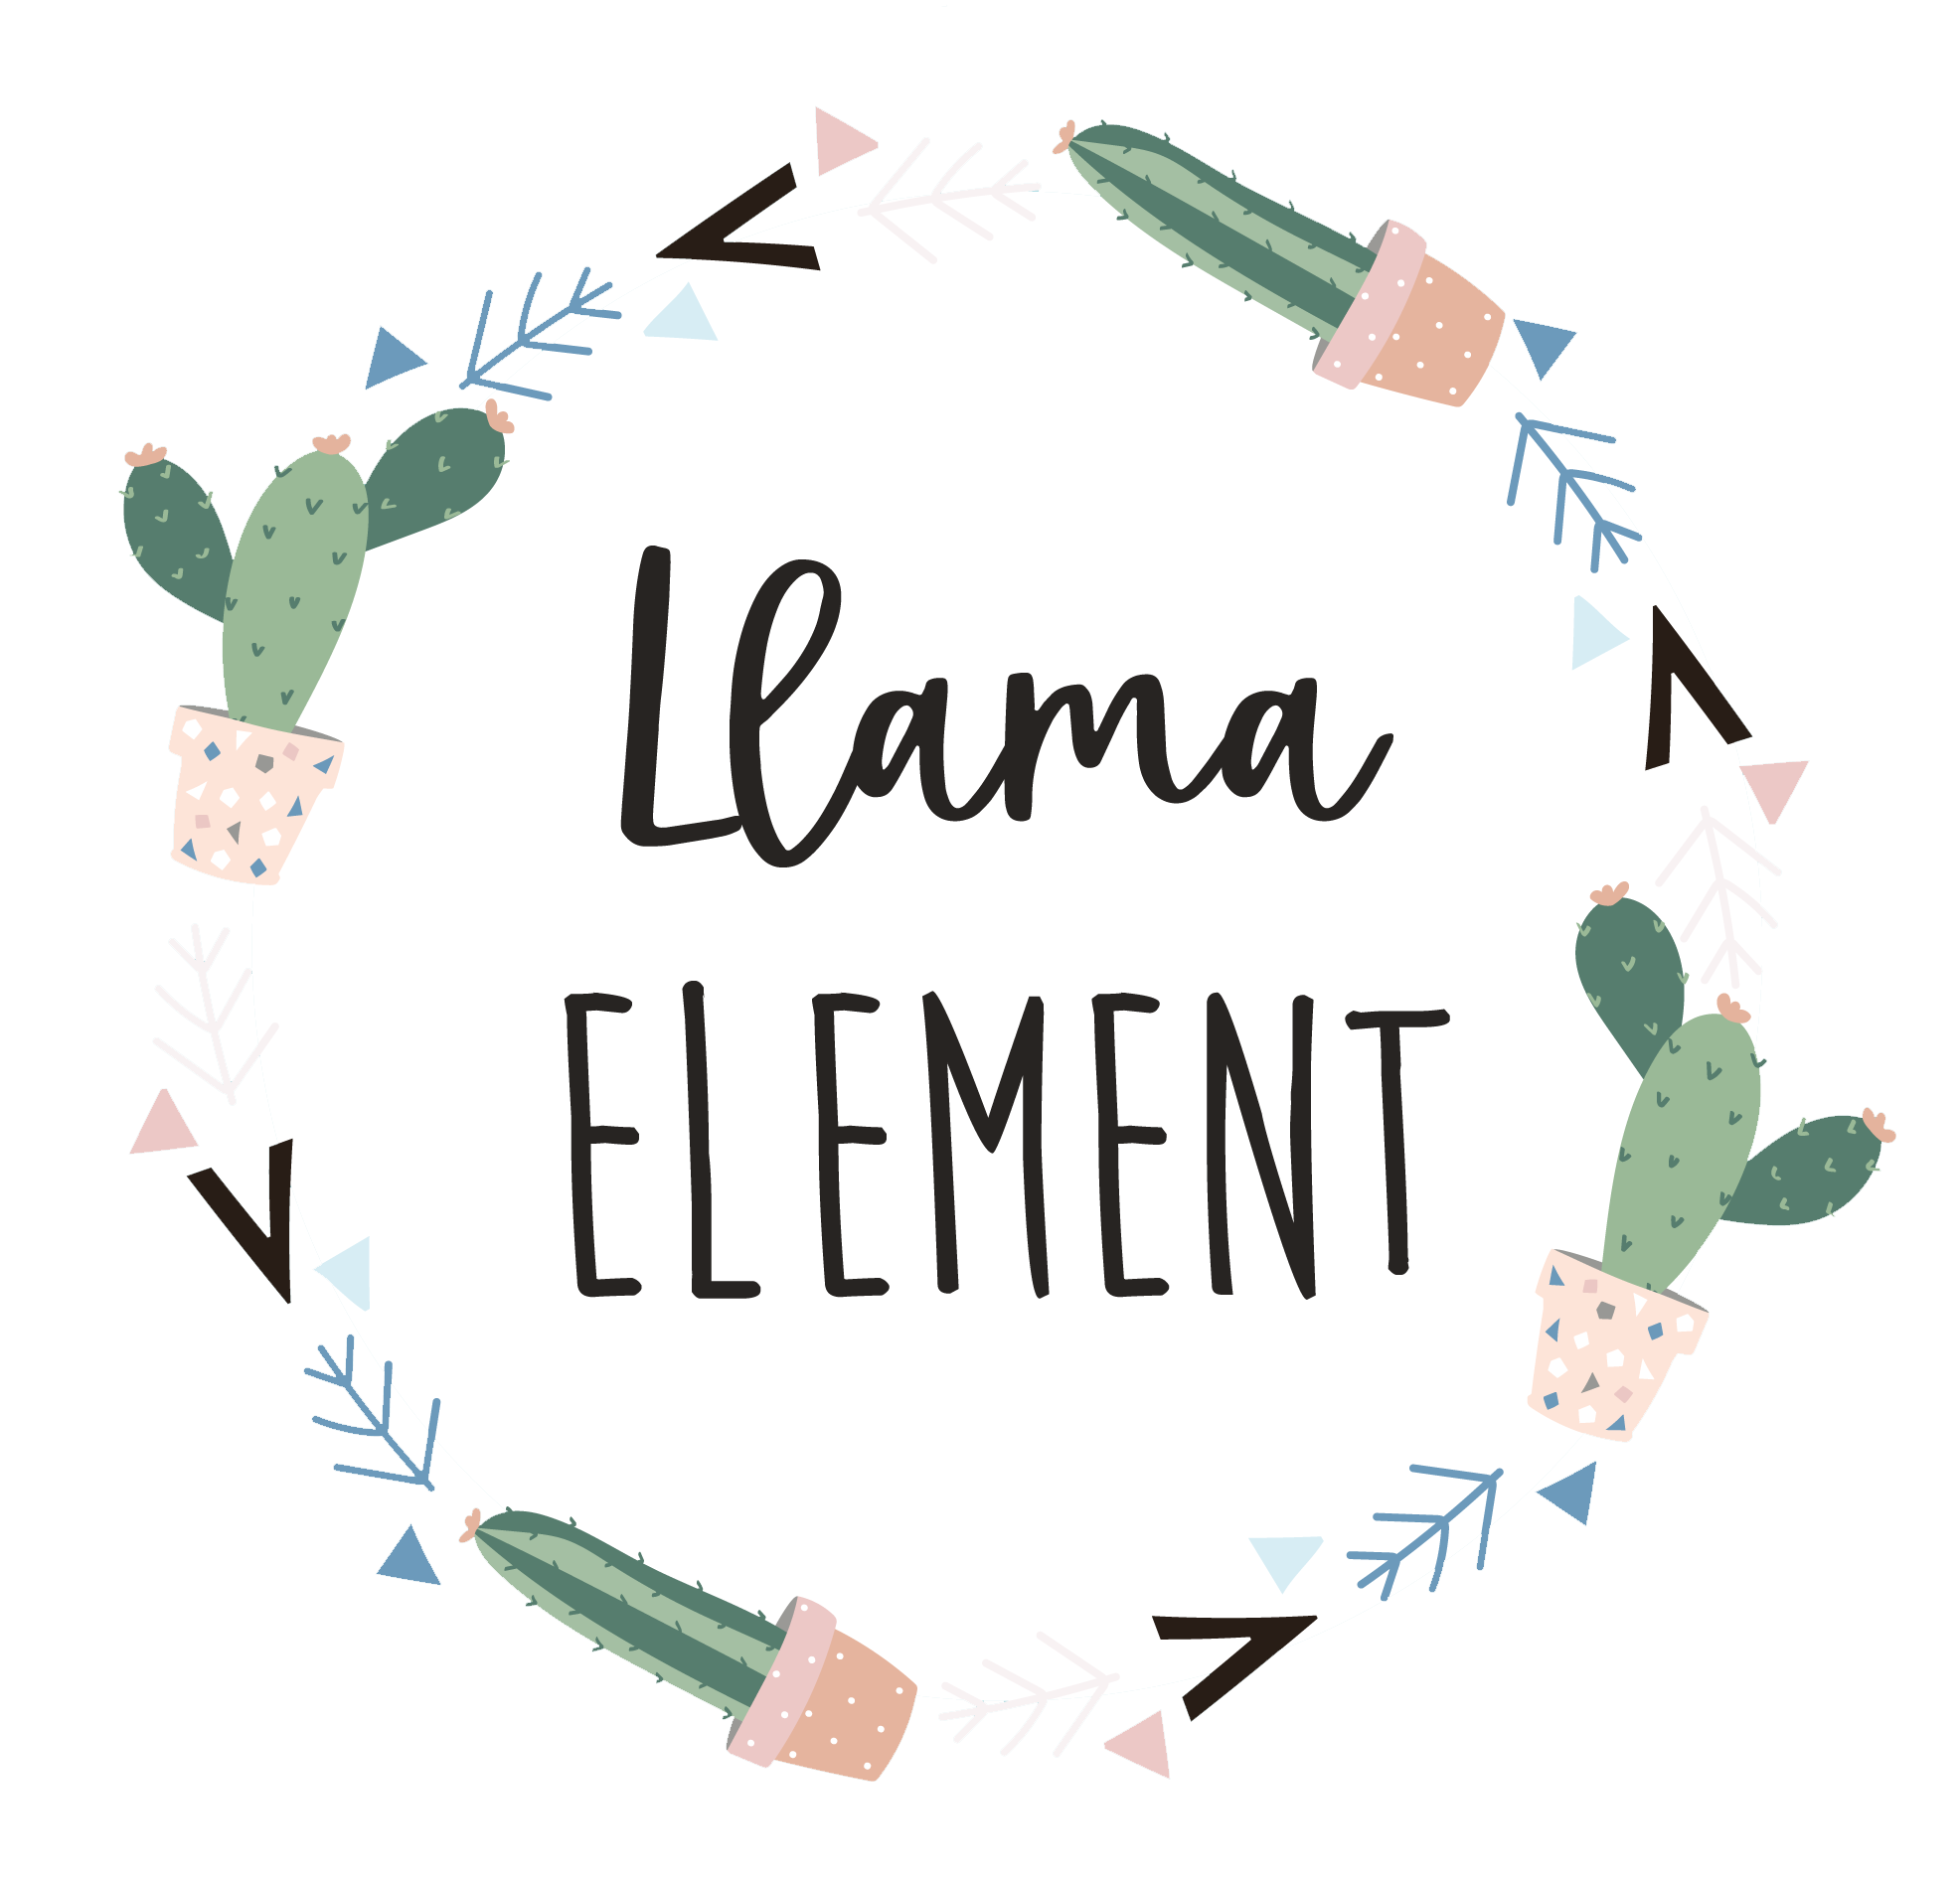 Llama element for alpaca calling